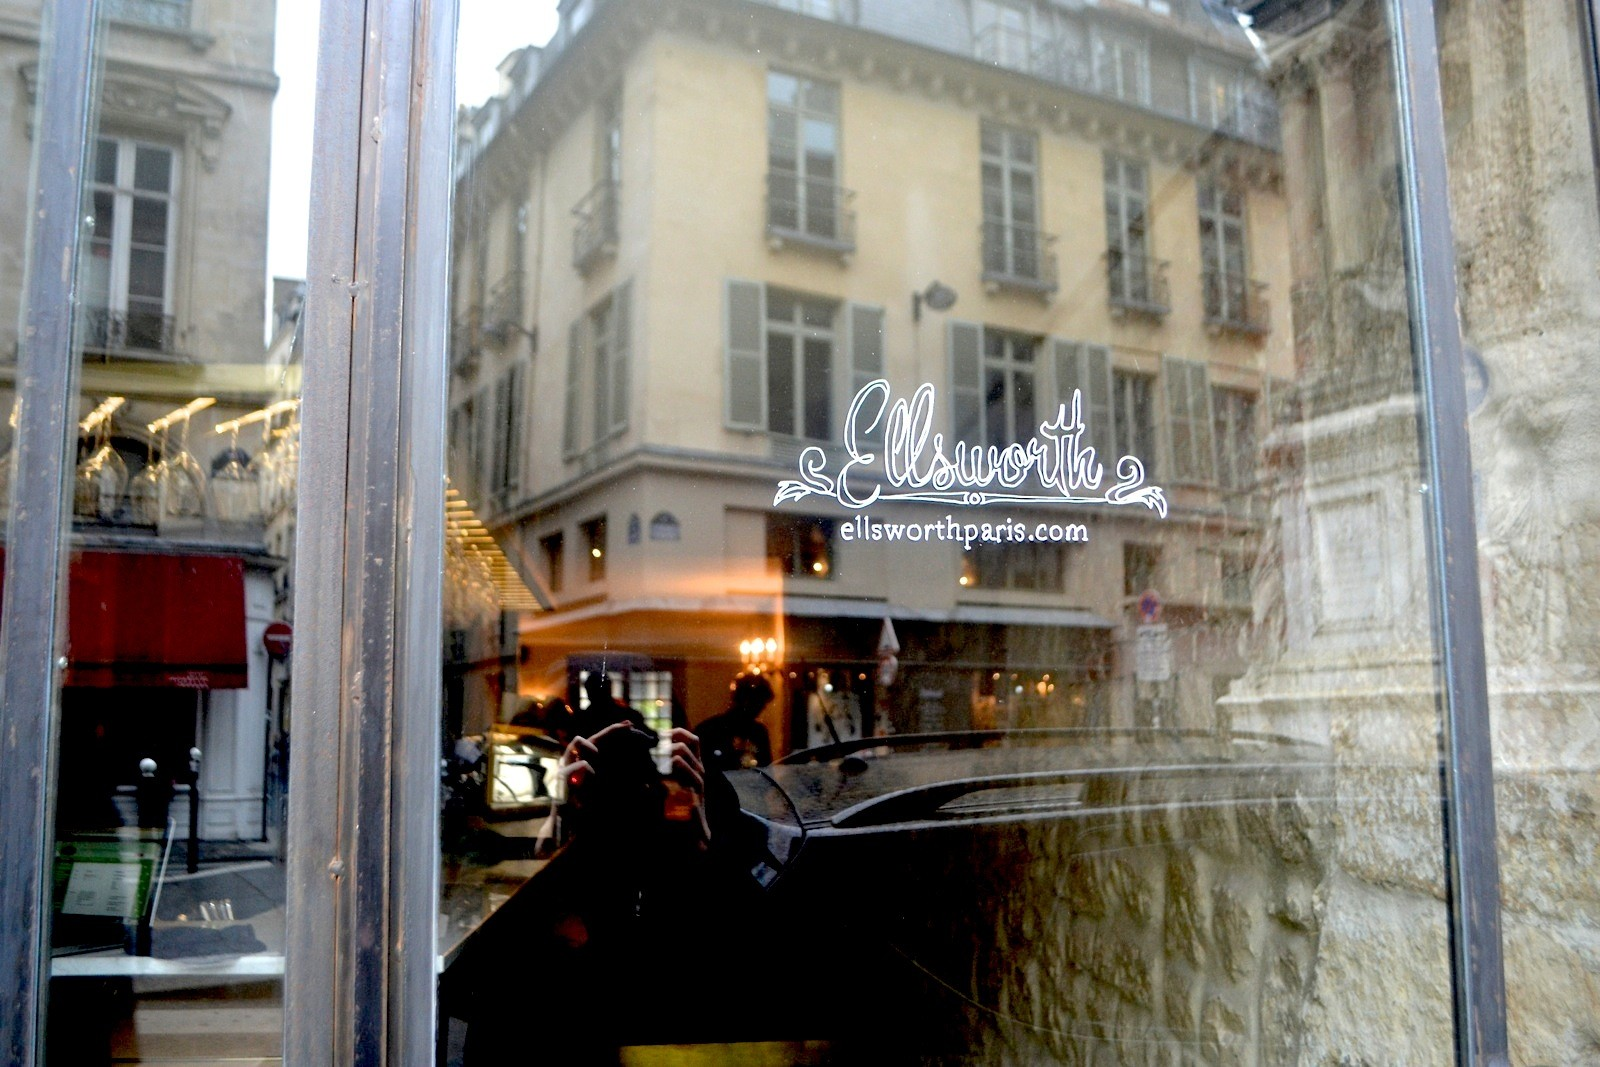 Ellsworth Restaurant and Wine Bar: Revisiting American Comfort Food in Paris